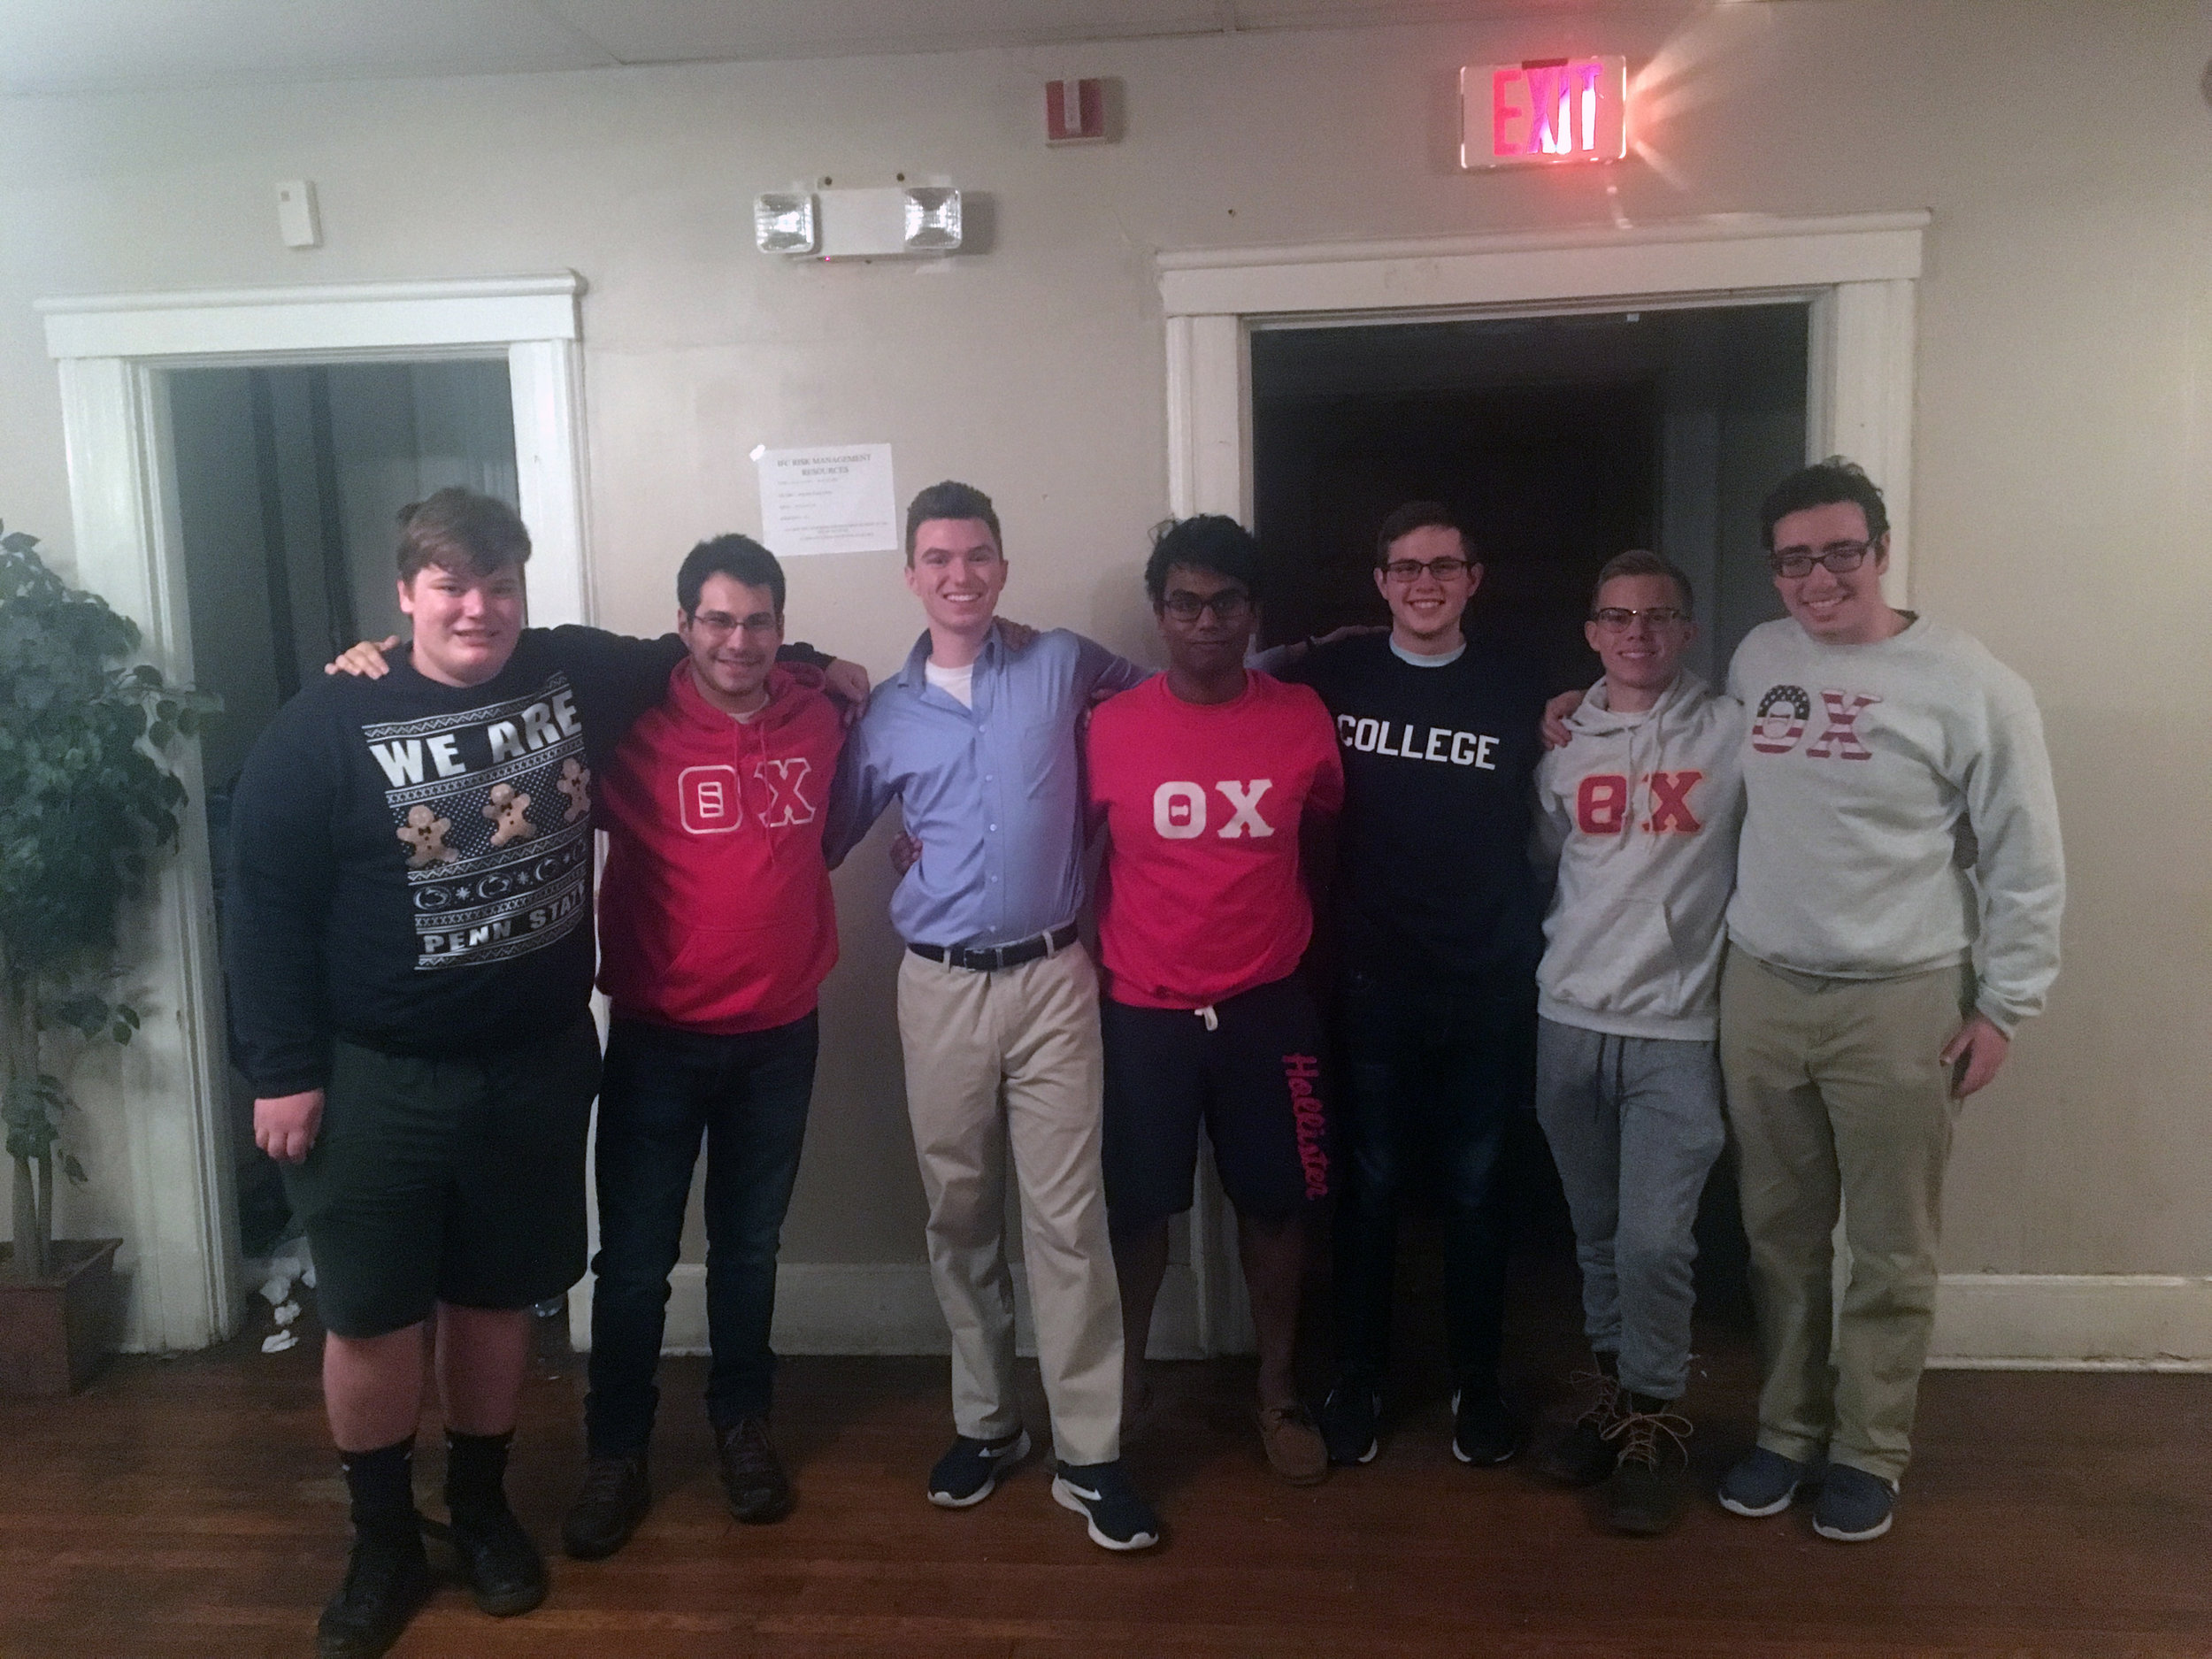 Newly Initiated brothers with their Marshal, (from left to right): Nick, Jeremy, Trey, Kawsar (Marshal), John, Jake, and Rob - Nov. 2018